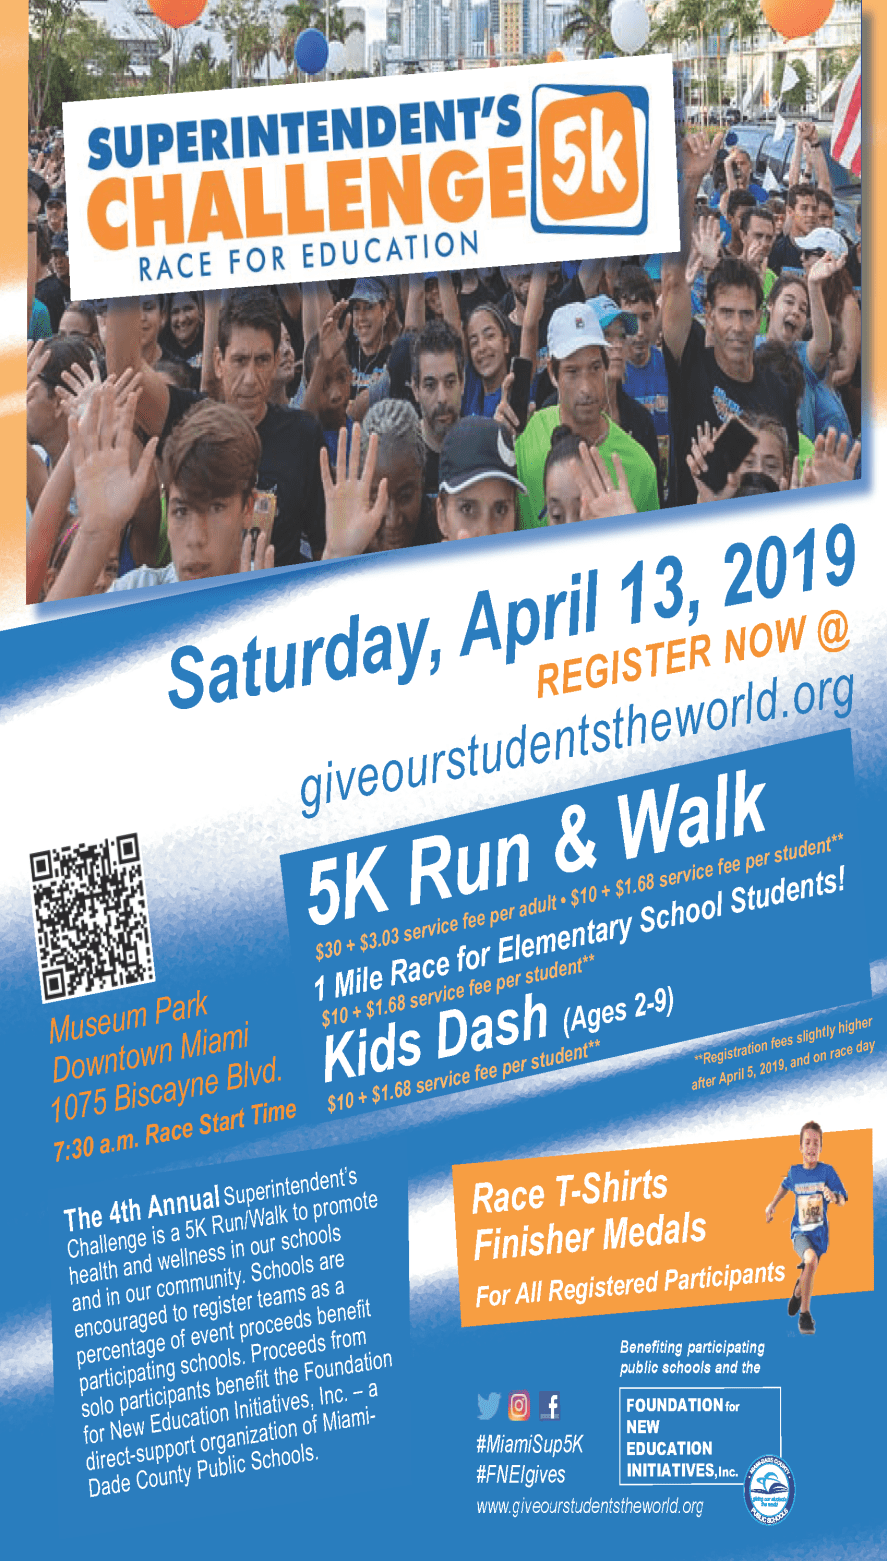 2019 Superintendent's 5K Run/Walk Race for Education @ Museum Park